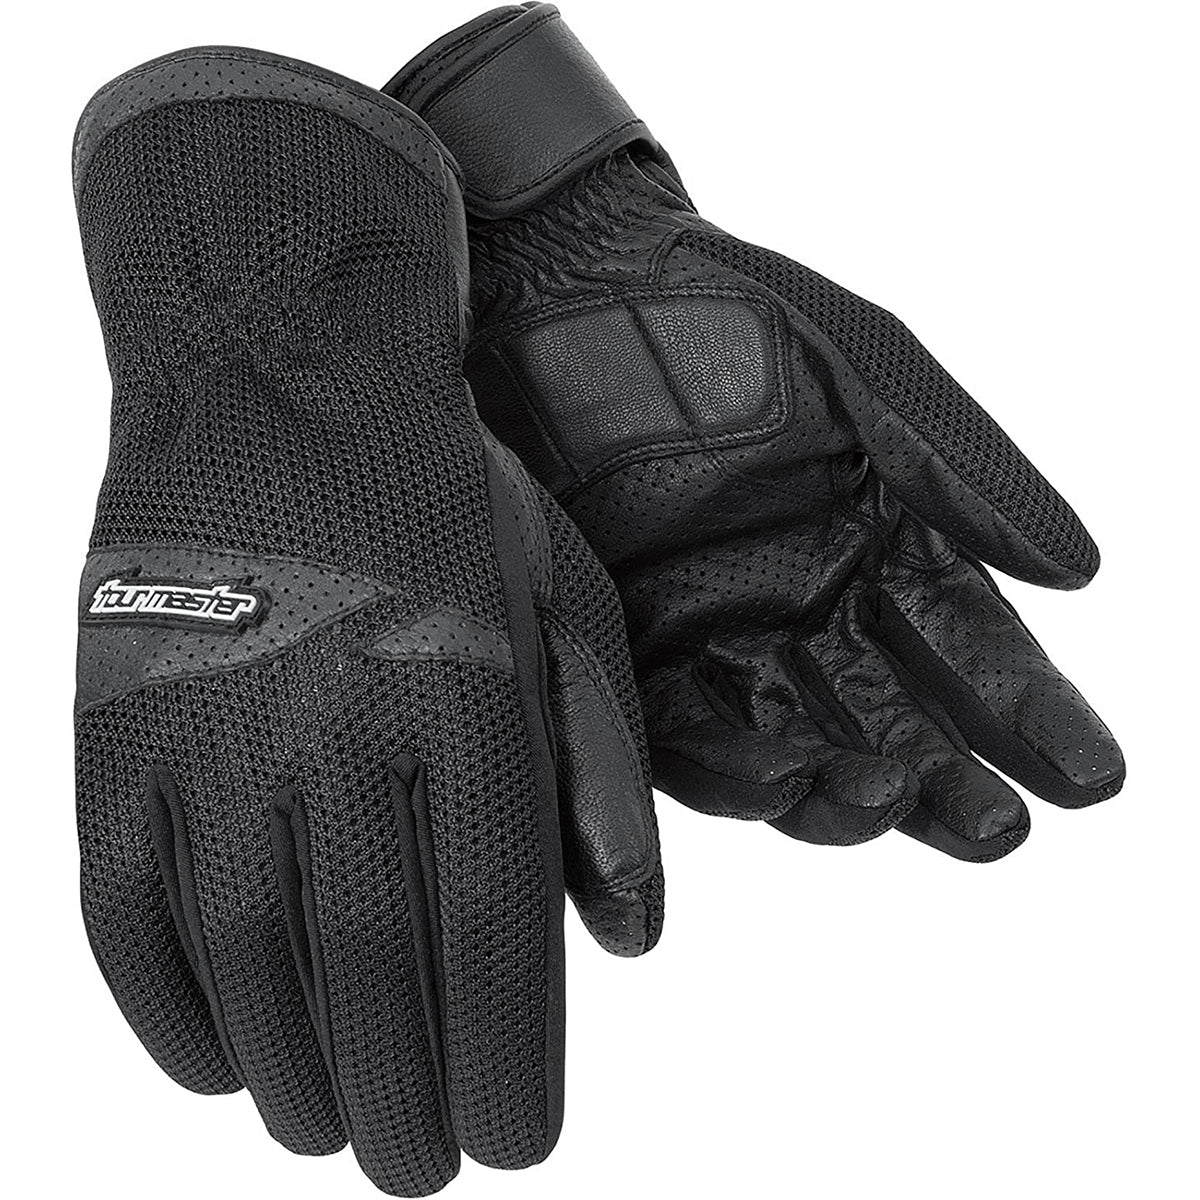 Tour Master Drimesh Women's Street Gloves-8416